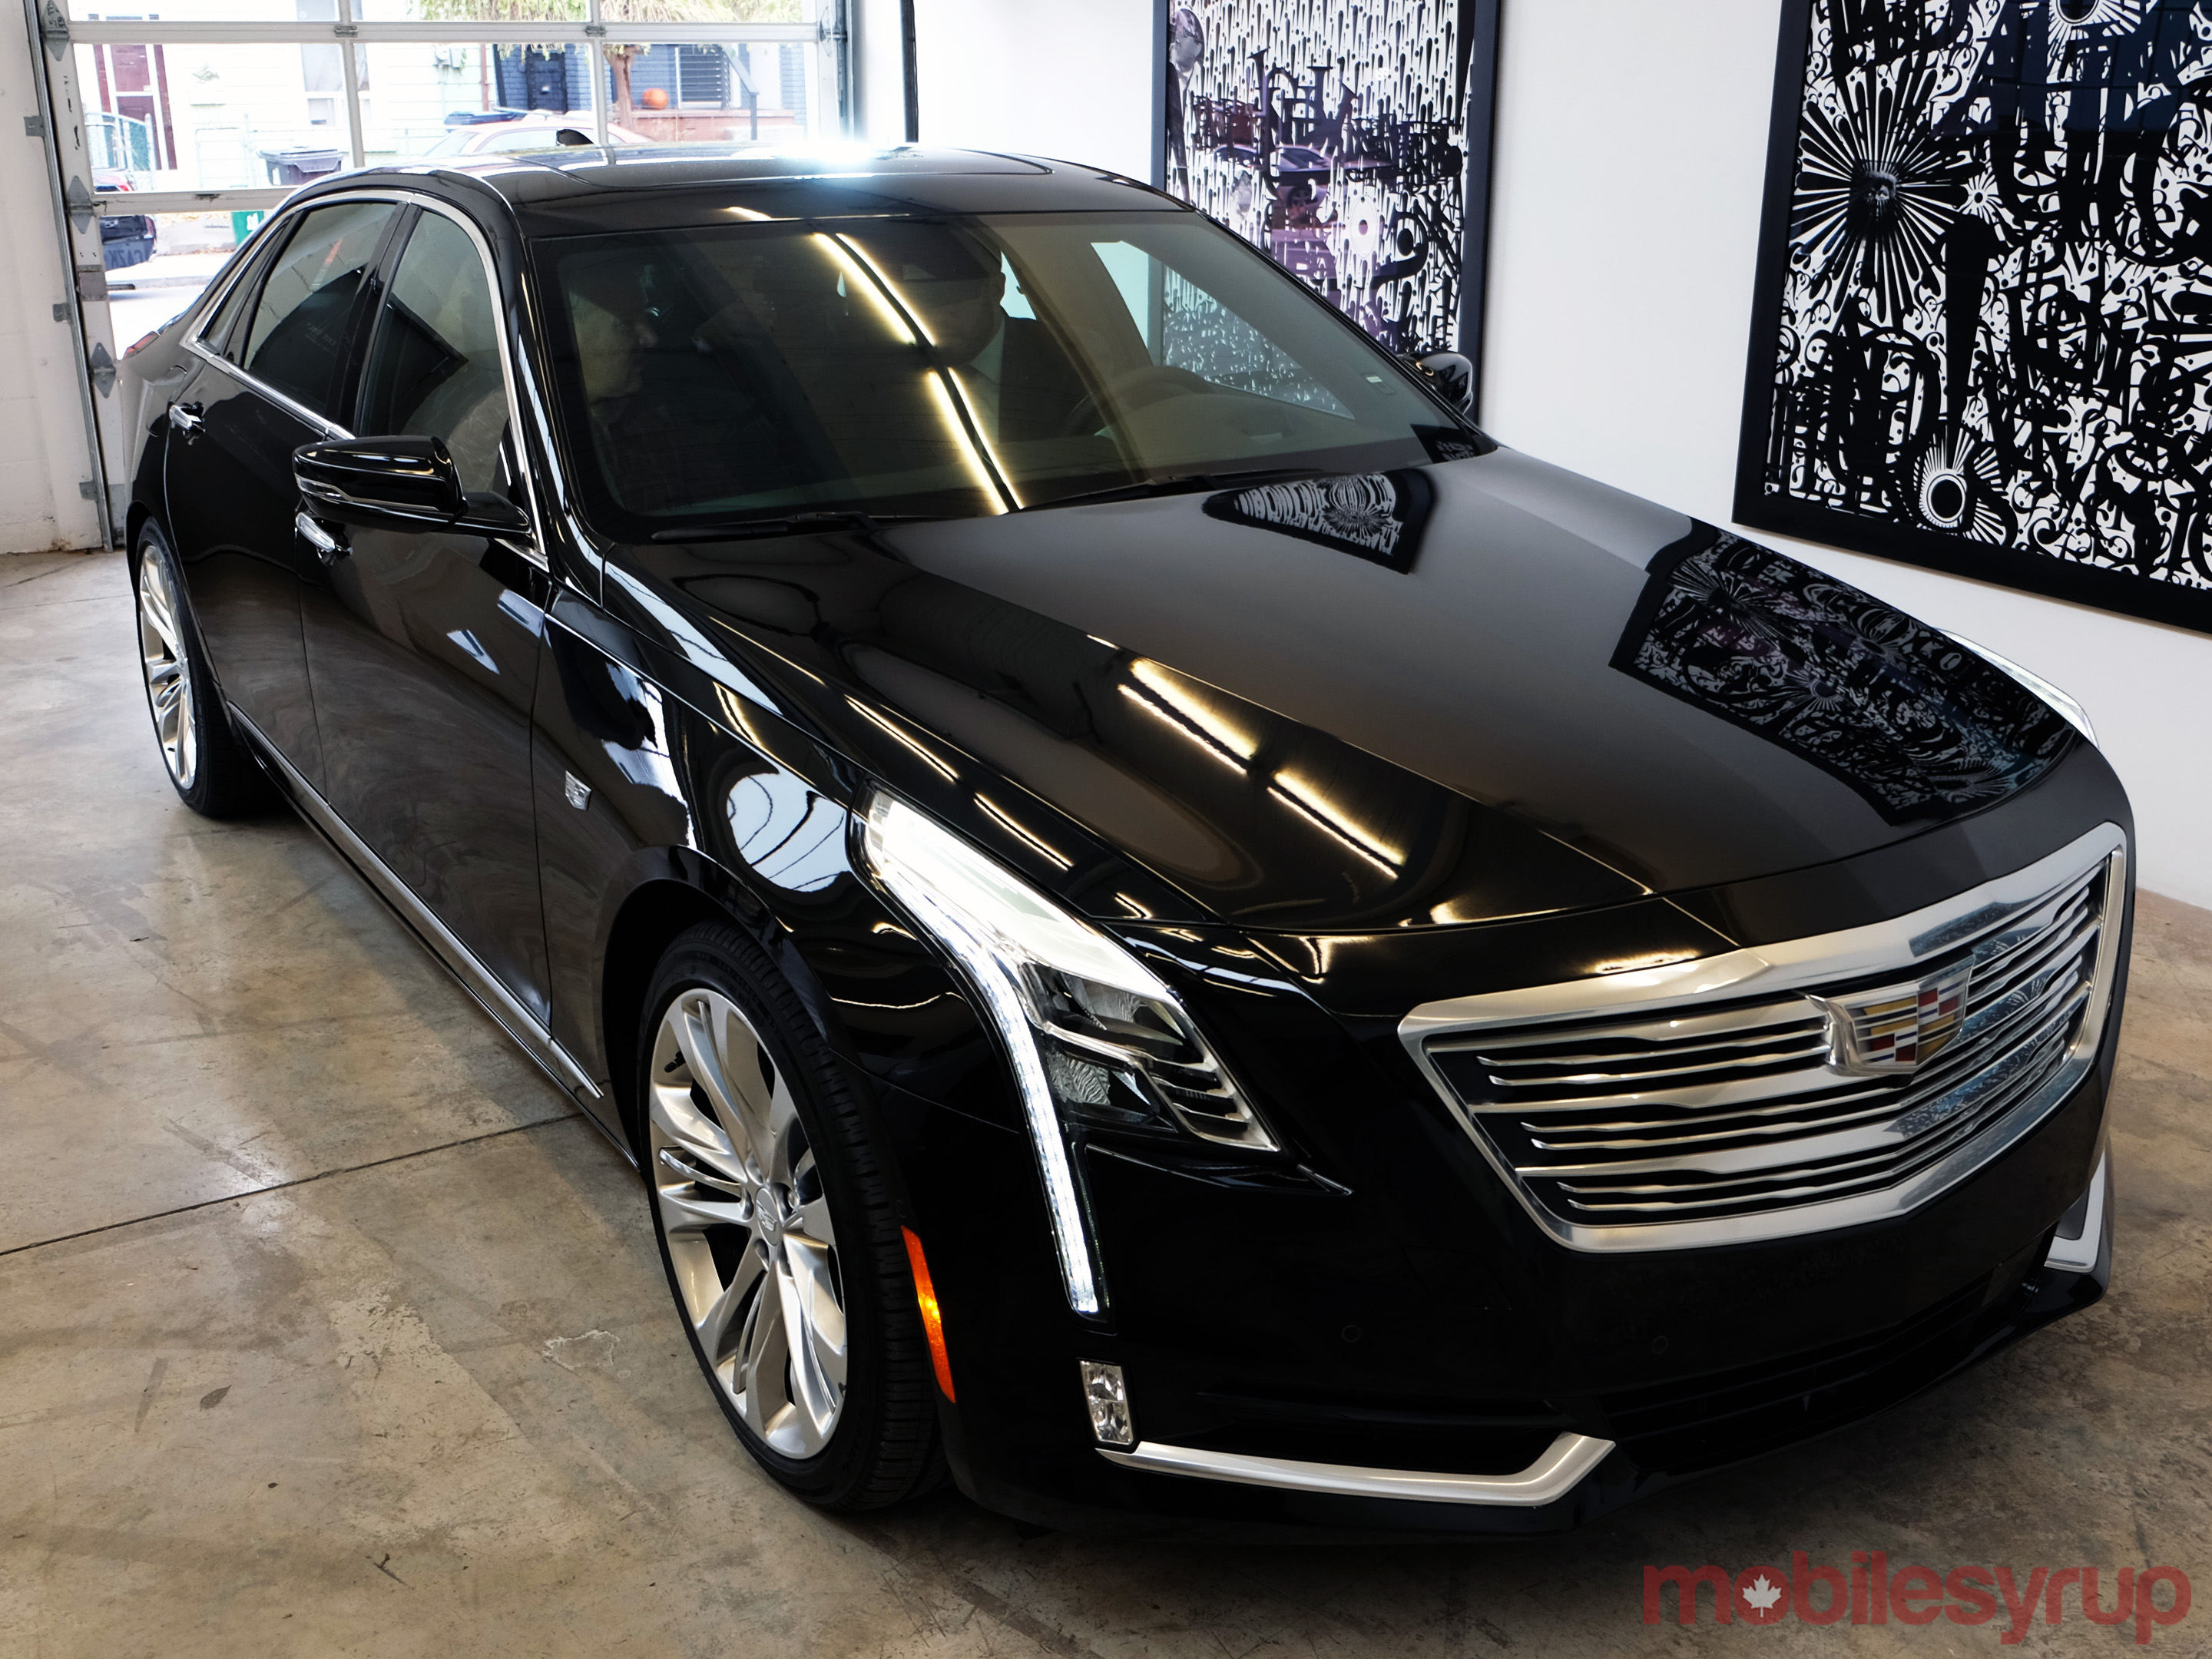 2017 cadillac ct6 sedan hands on checking out cadillac s new connected car mobilesyrup. Black Bedroom Furniture Sets. Home Design Ideas